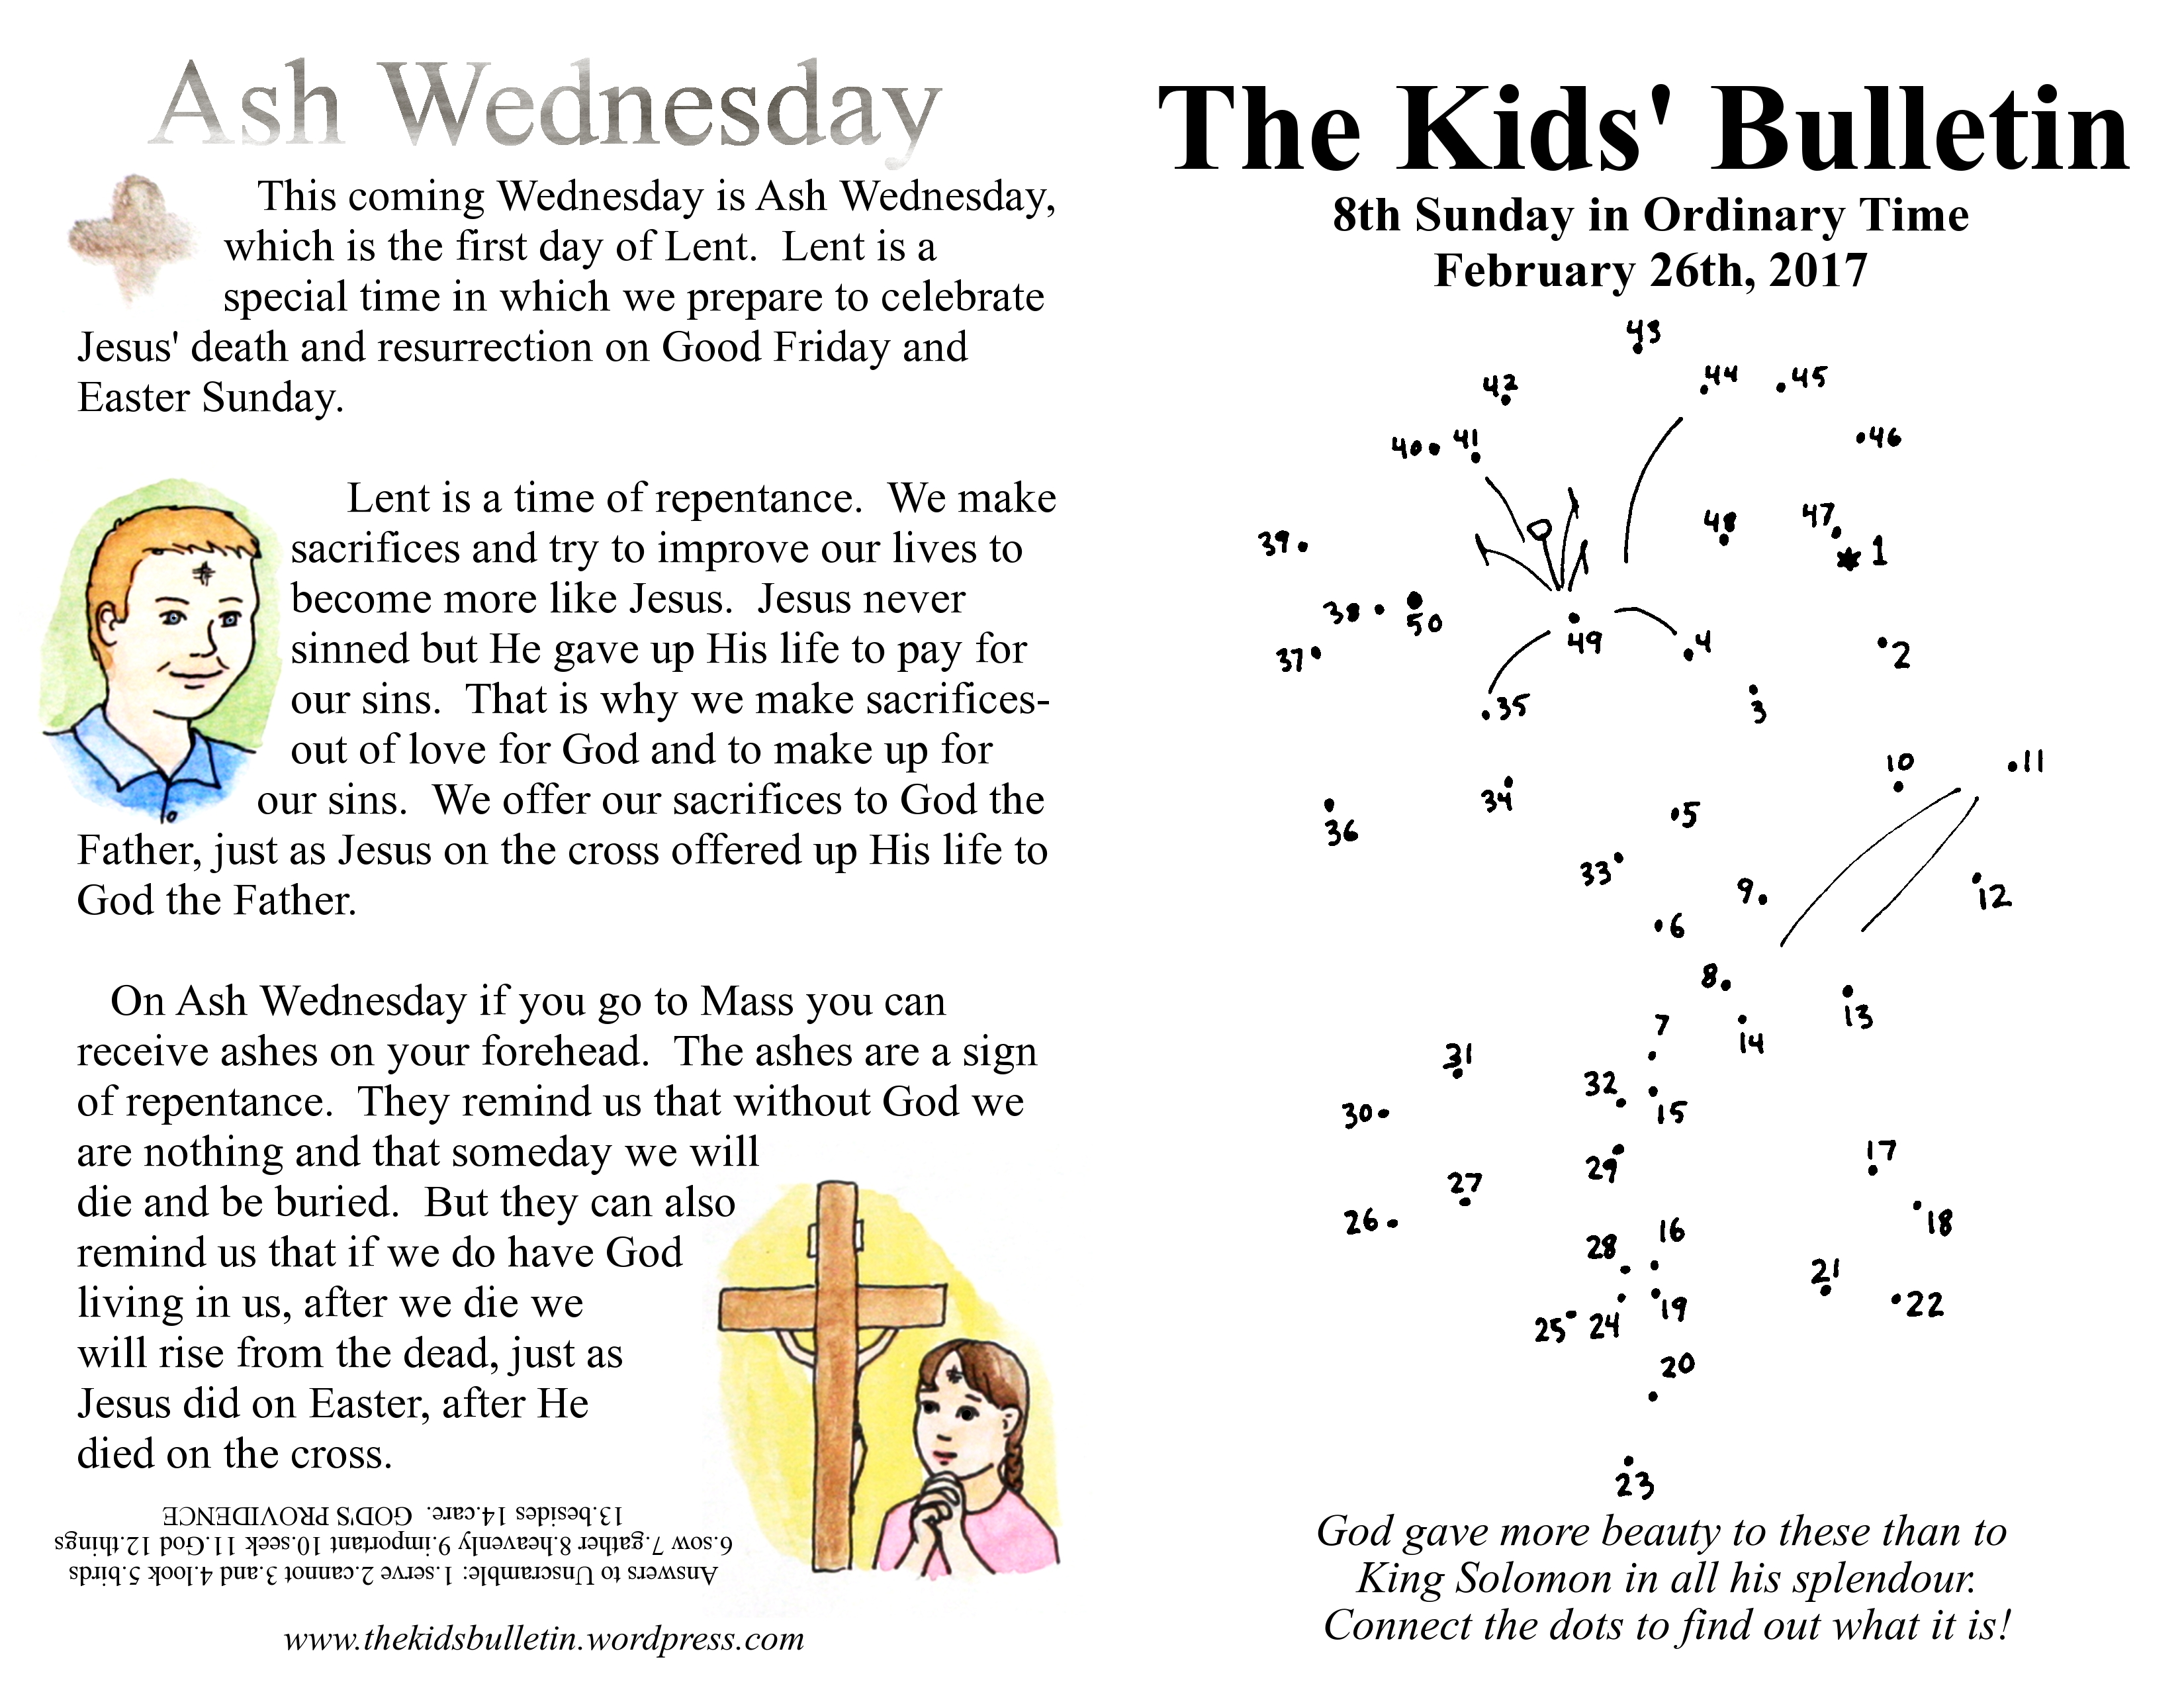 The Kids Bulletin For Sunday February 26th And Ash